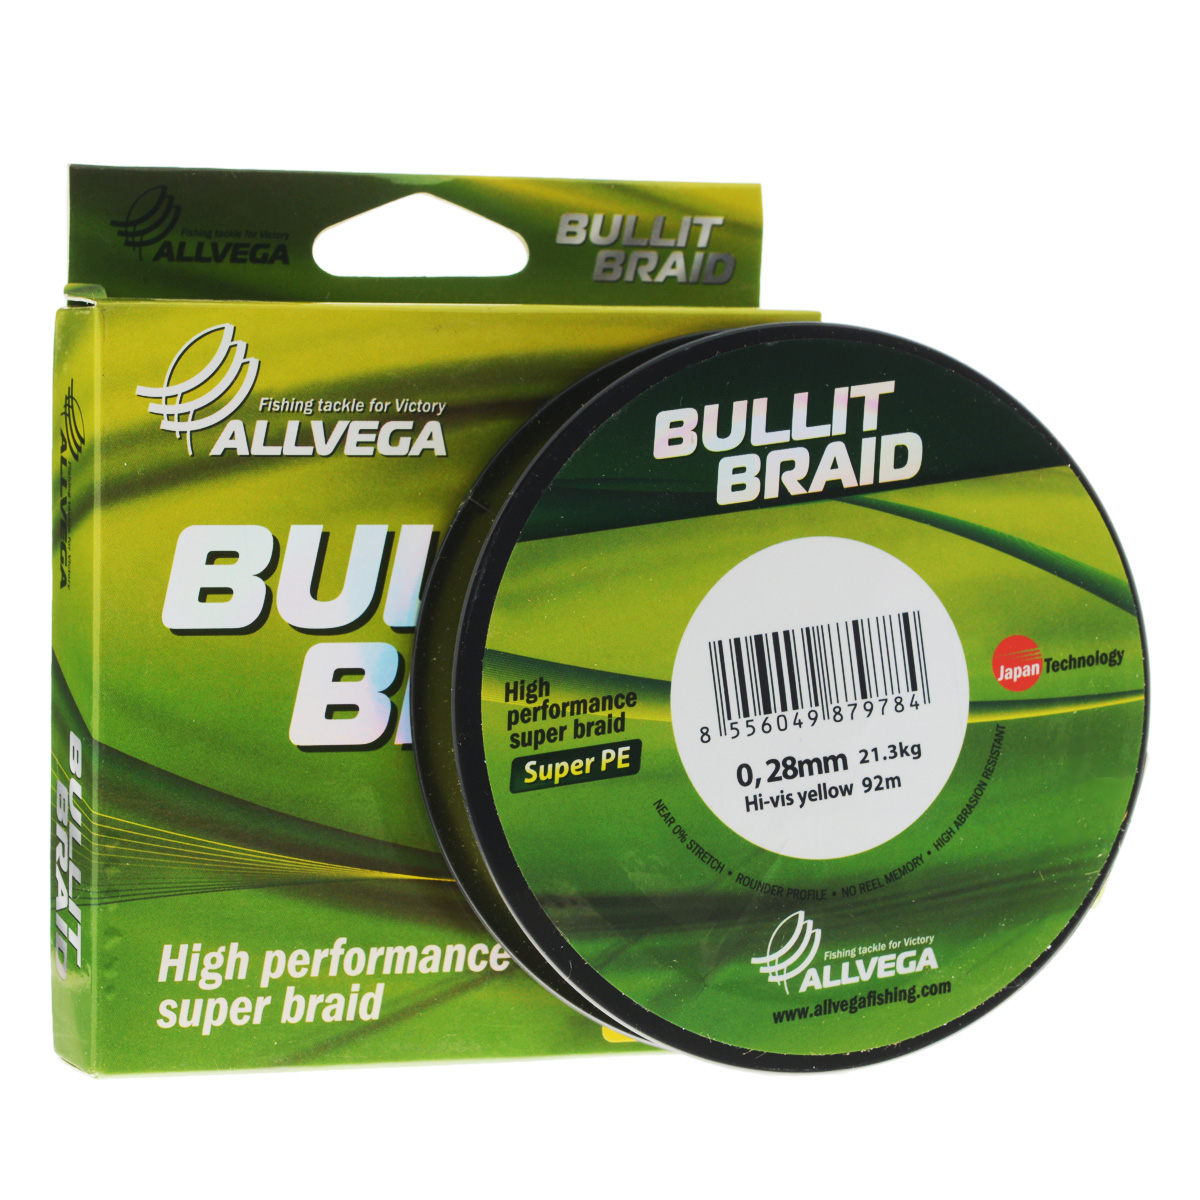 Леска плетеная Allvega Bullit Braid, цвет: ярко-желтый, 92 м, 0,28 мм, 21,3 кг